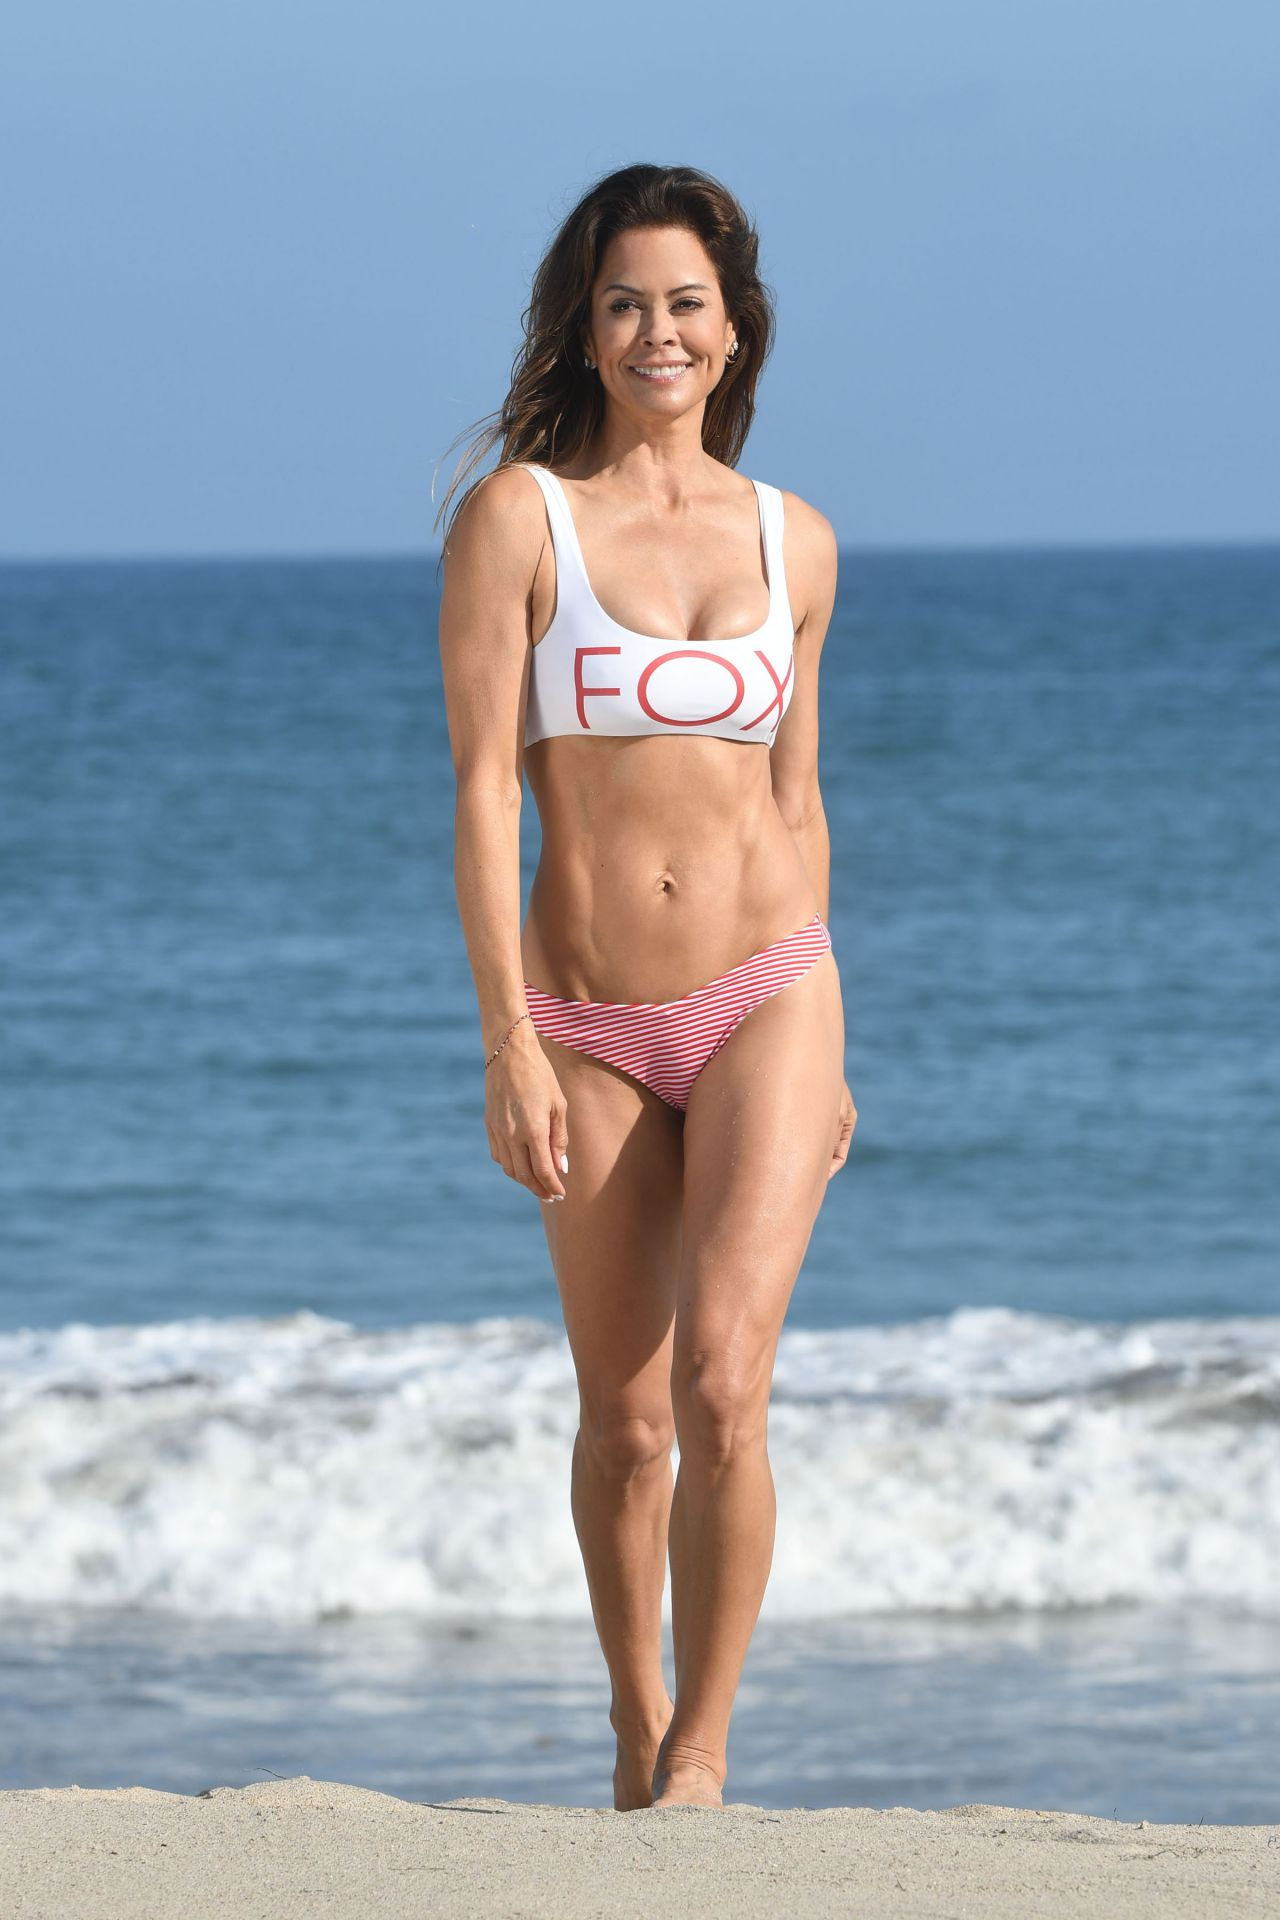 2019 Brooke Burke-Charvet nude photos 2019